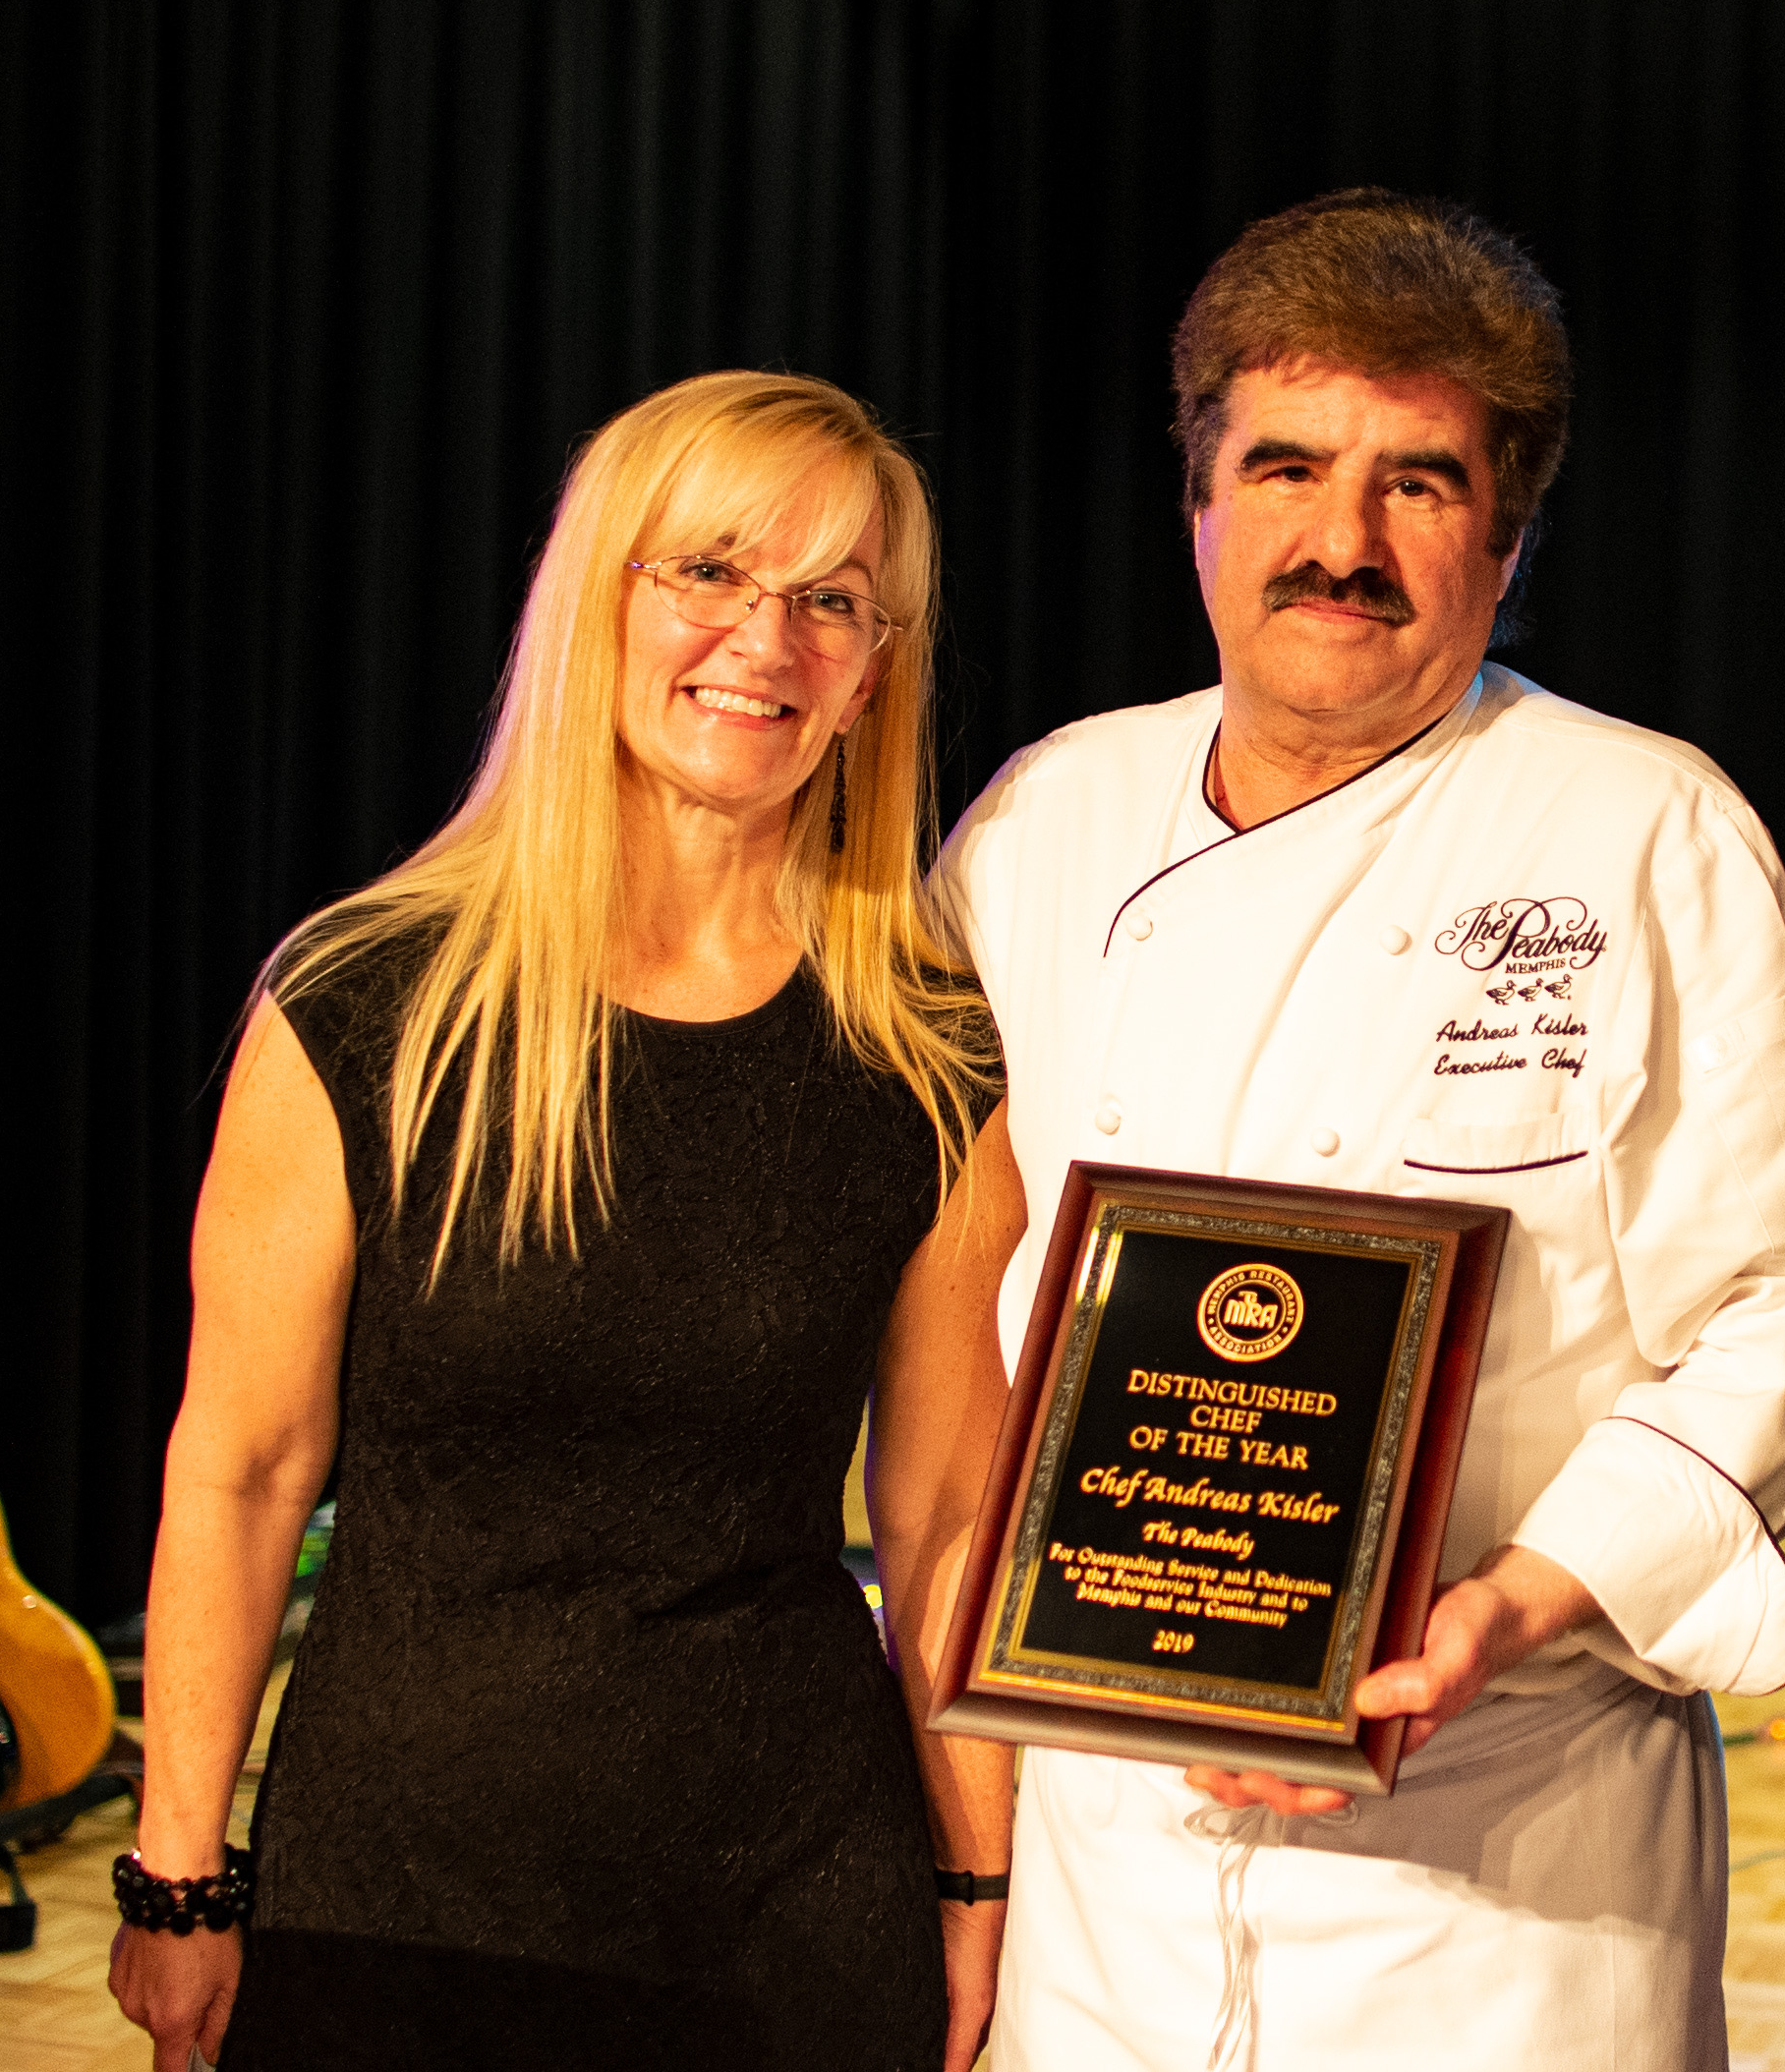 Chef Andreas Kisler accepting Chef of the Year award at the Peabody 55th annual MRA banquet